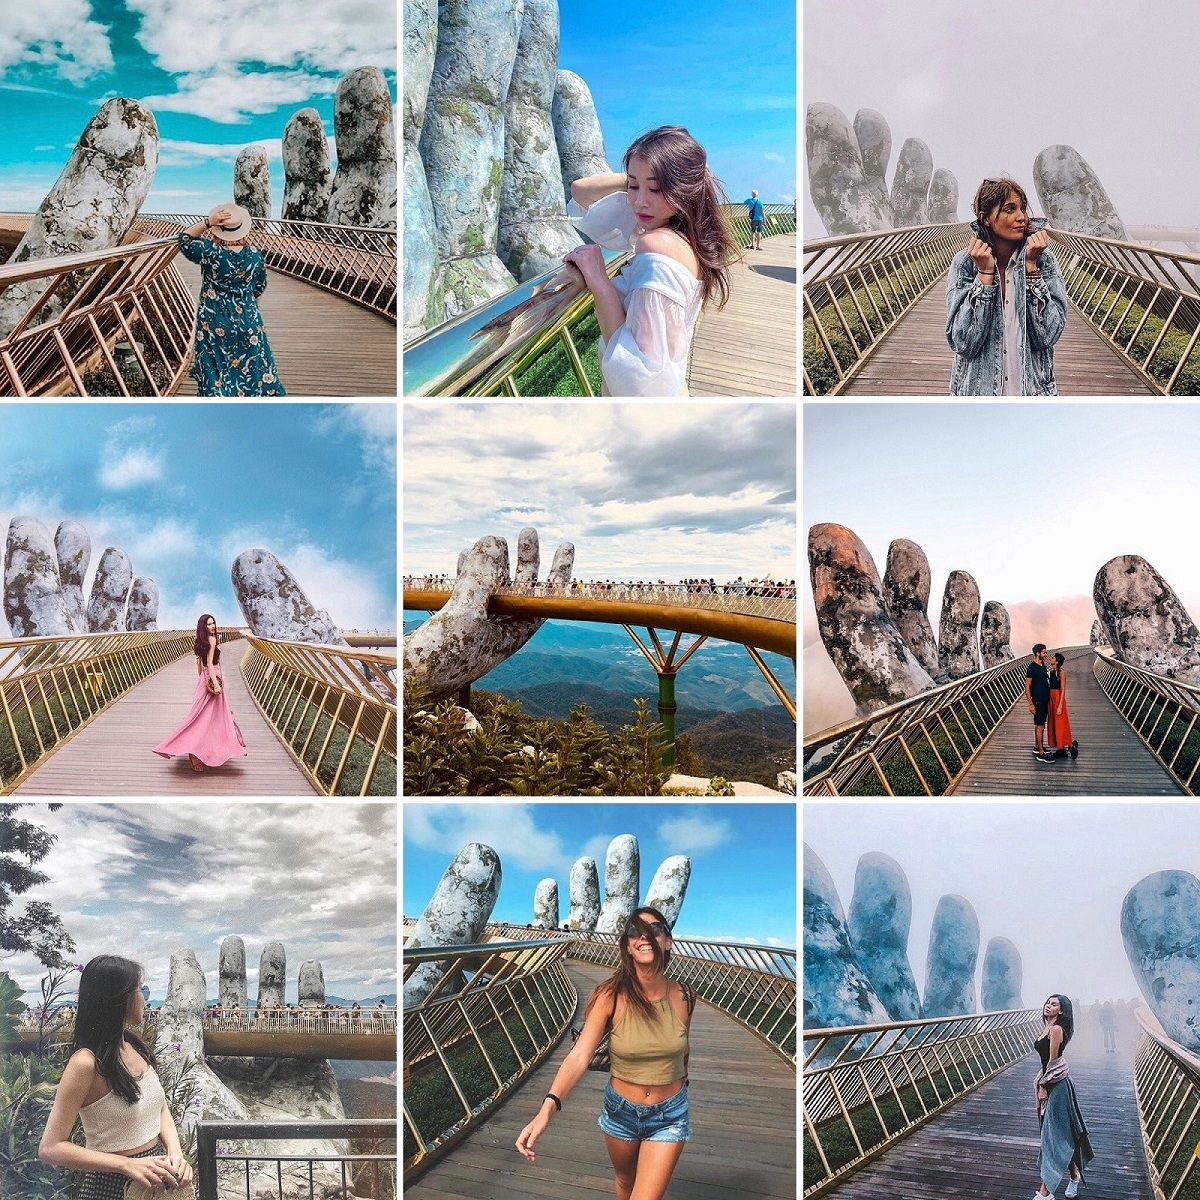 Instagram posts of Golden Bridge